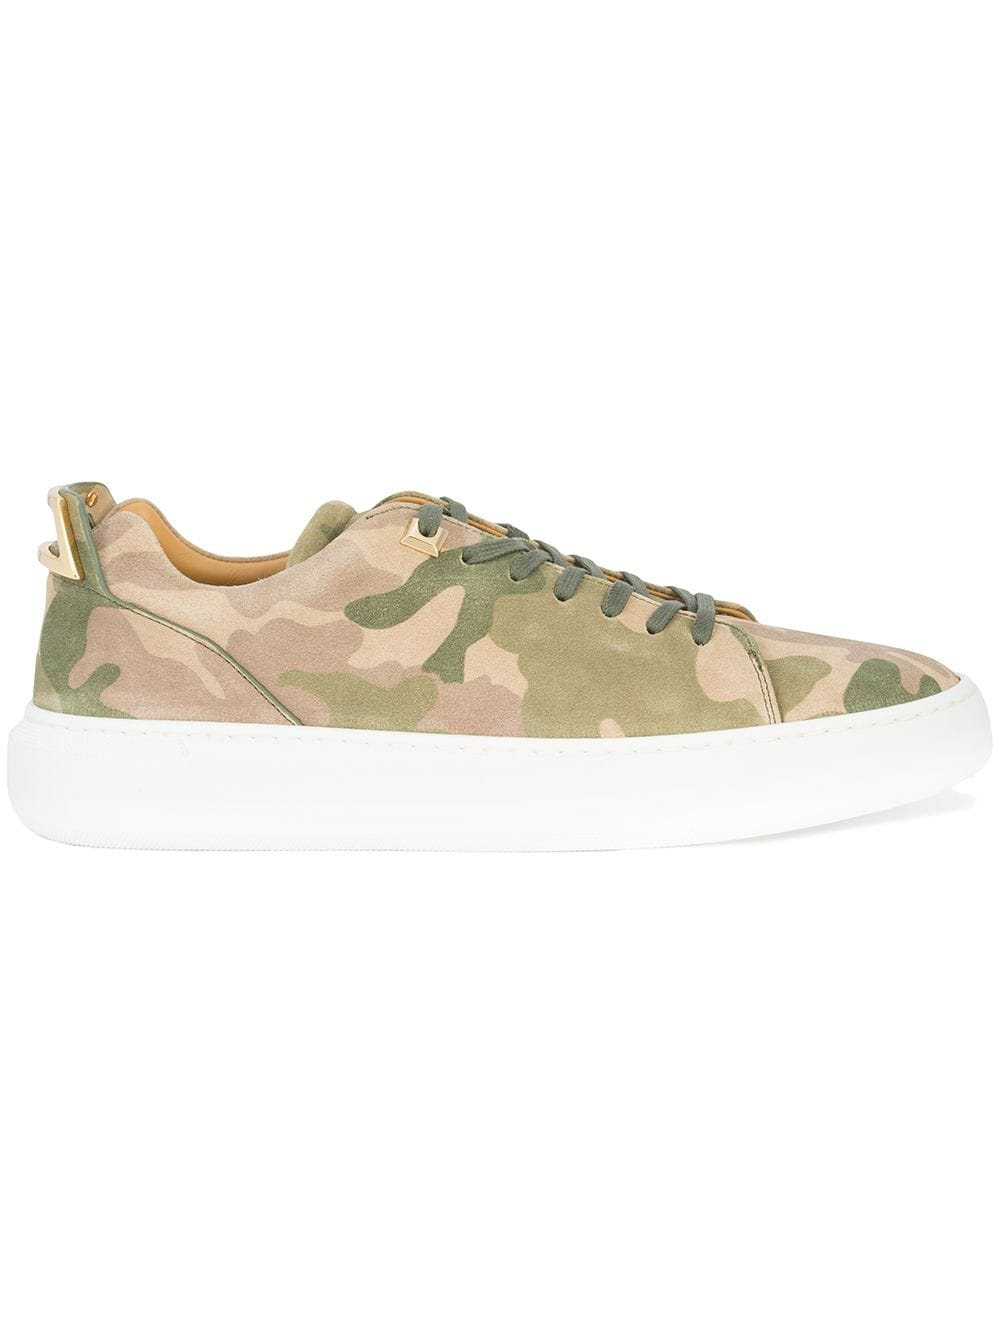 03265f3d547ed5 buscemi-camouflage-lace-up-sneakers-brown-farfetch-com-photo.jpg 1540275796